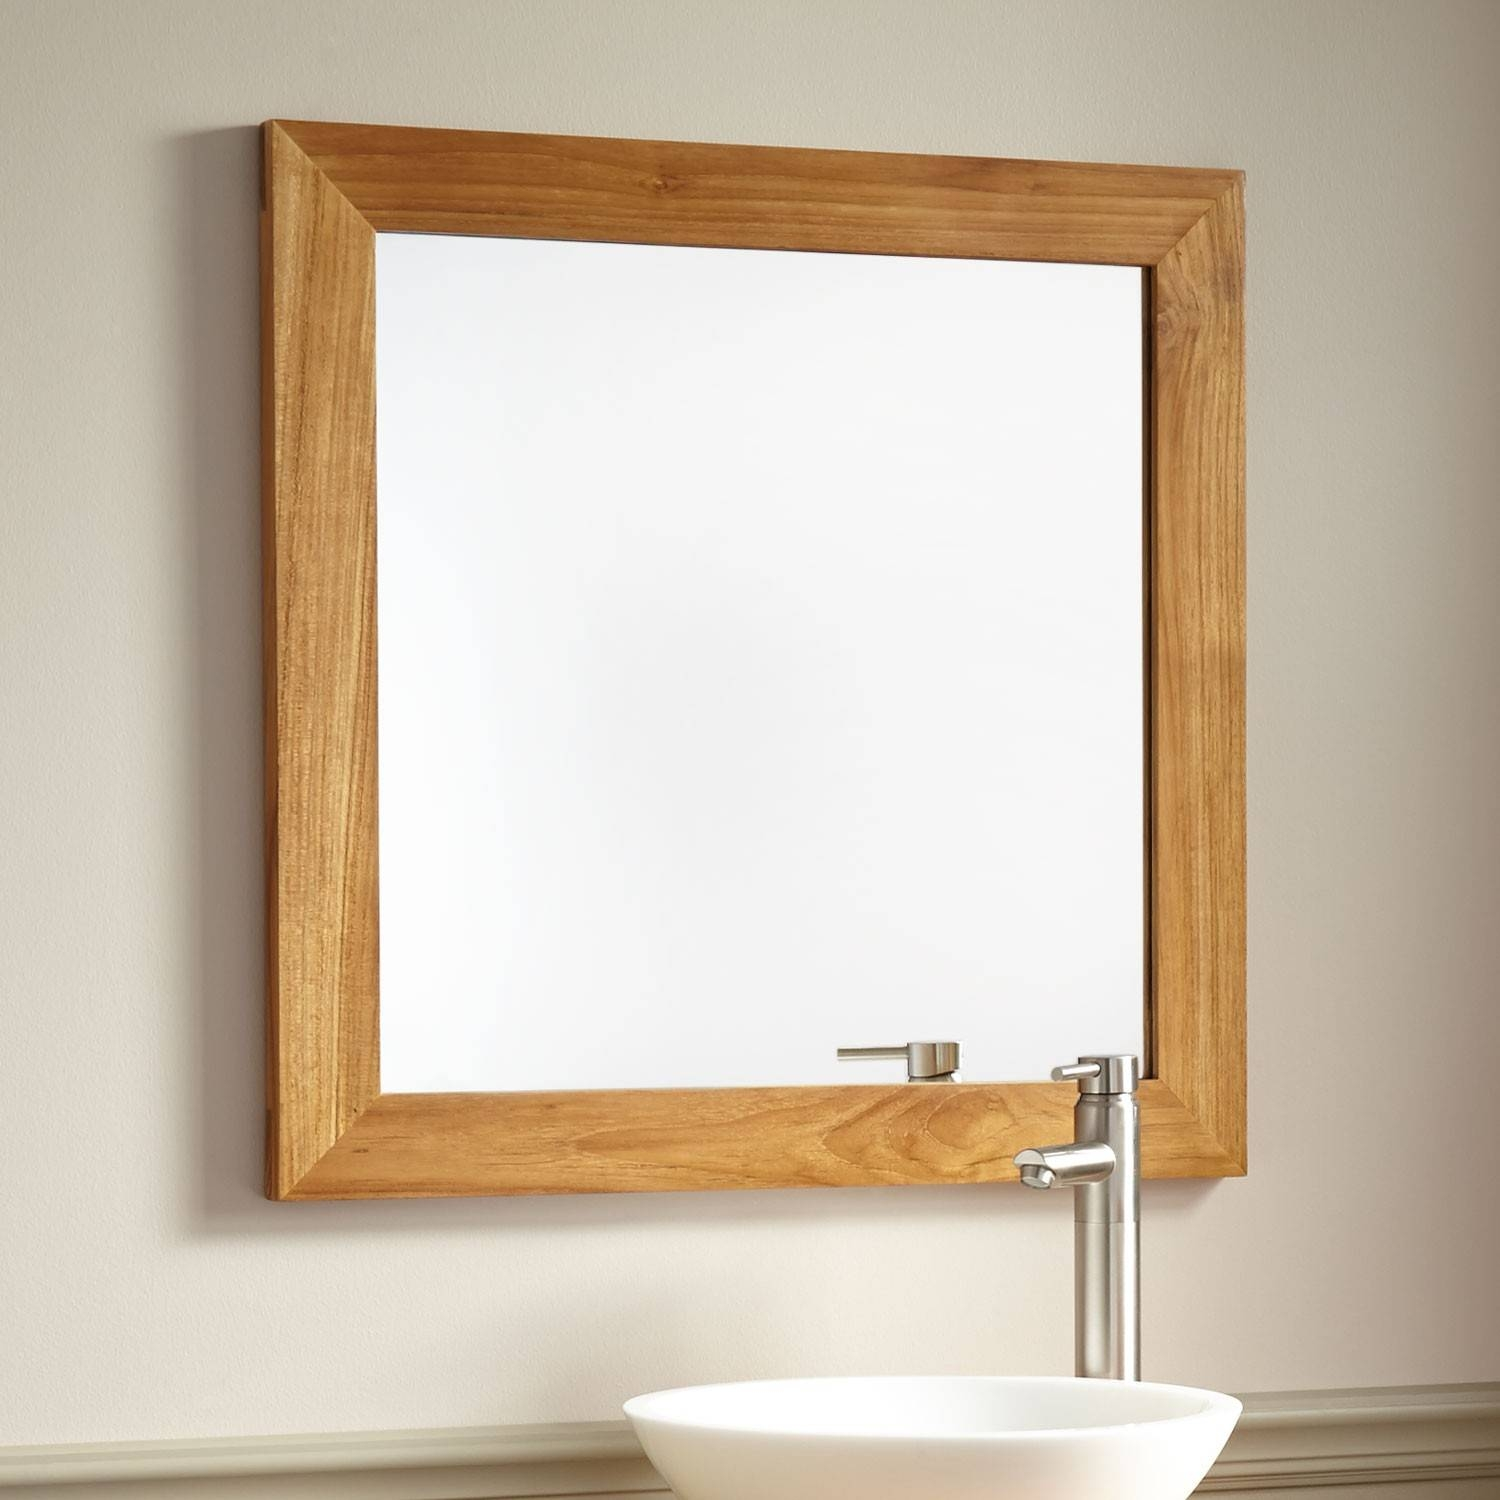 Framed Bathroom Mirrors | Signature Hardware for Rustic Oak Framed Mirrors (Image 9 of 15)